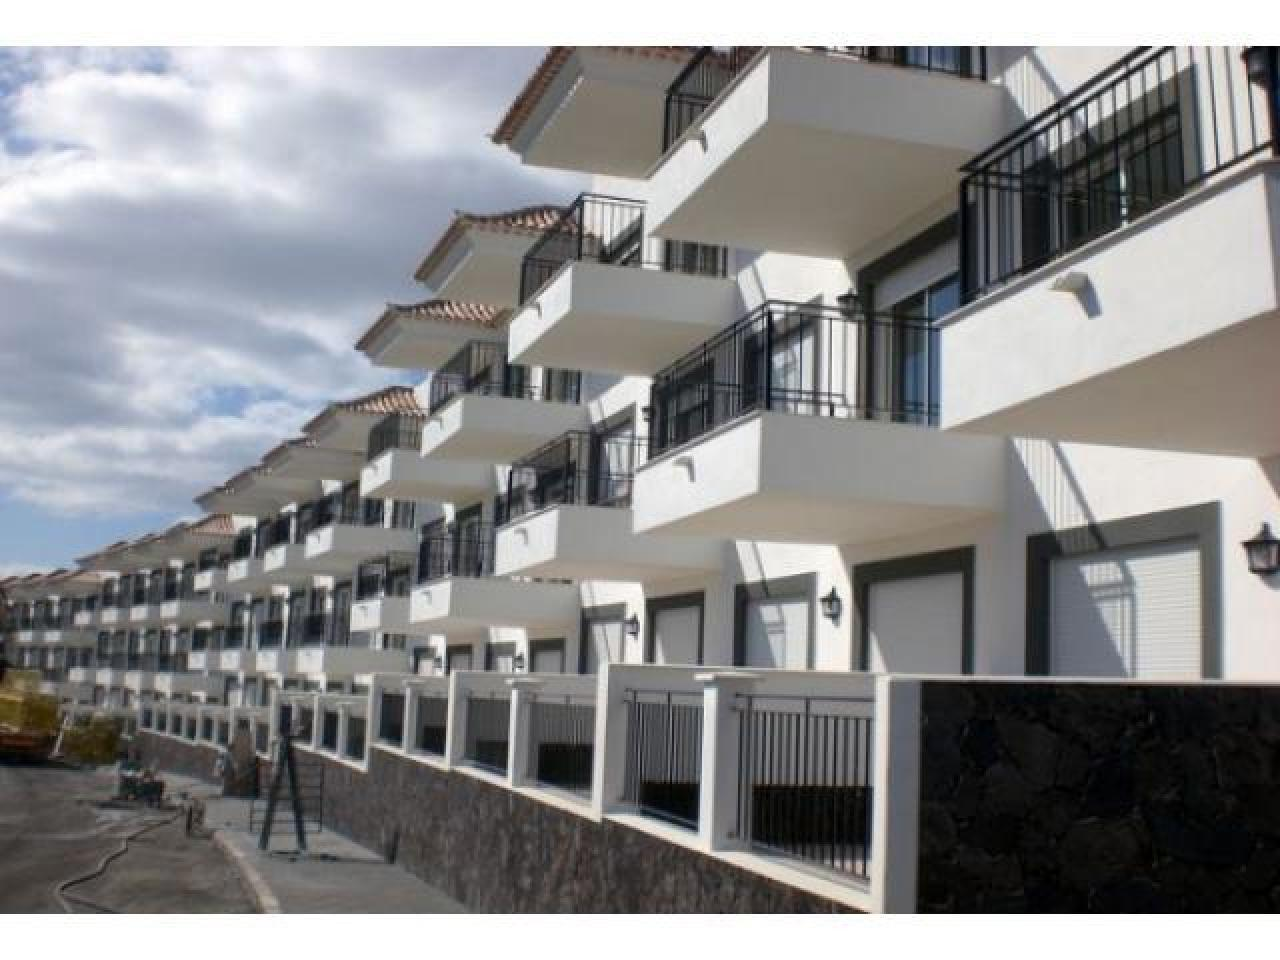 Real estate in Tenerife for sale » #44 - 5